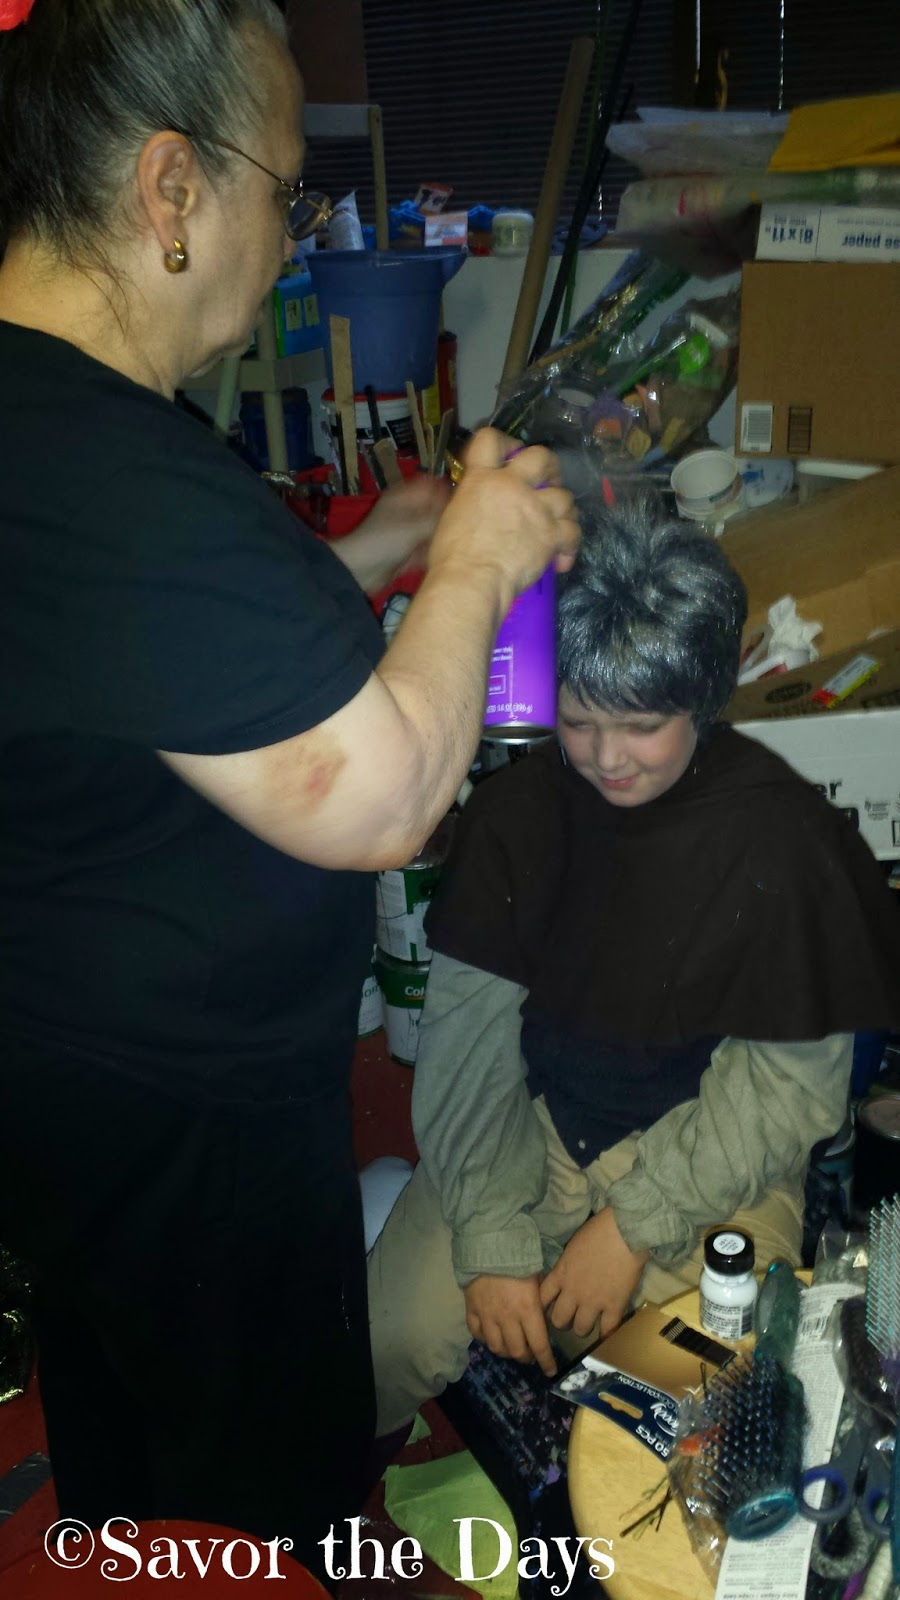 Children's theater - getting the wig styled